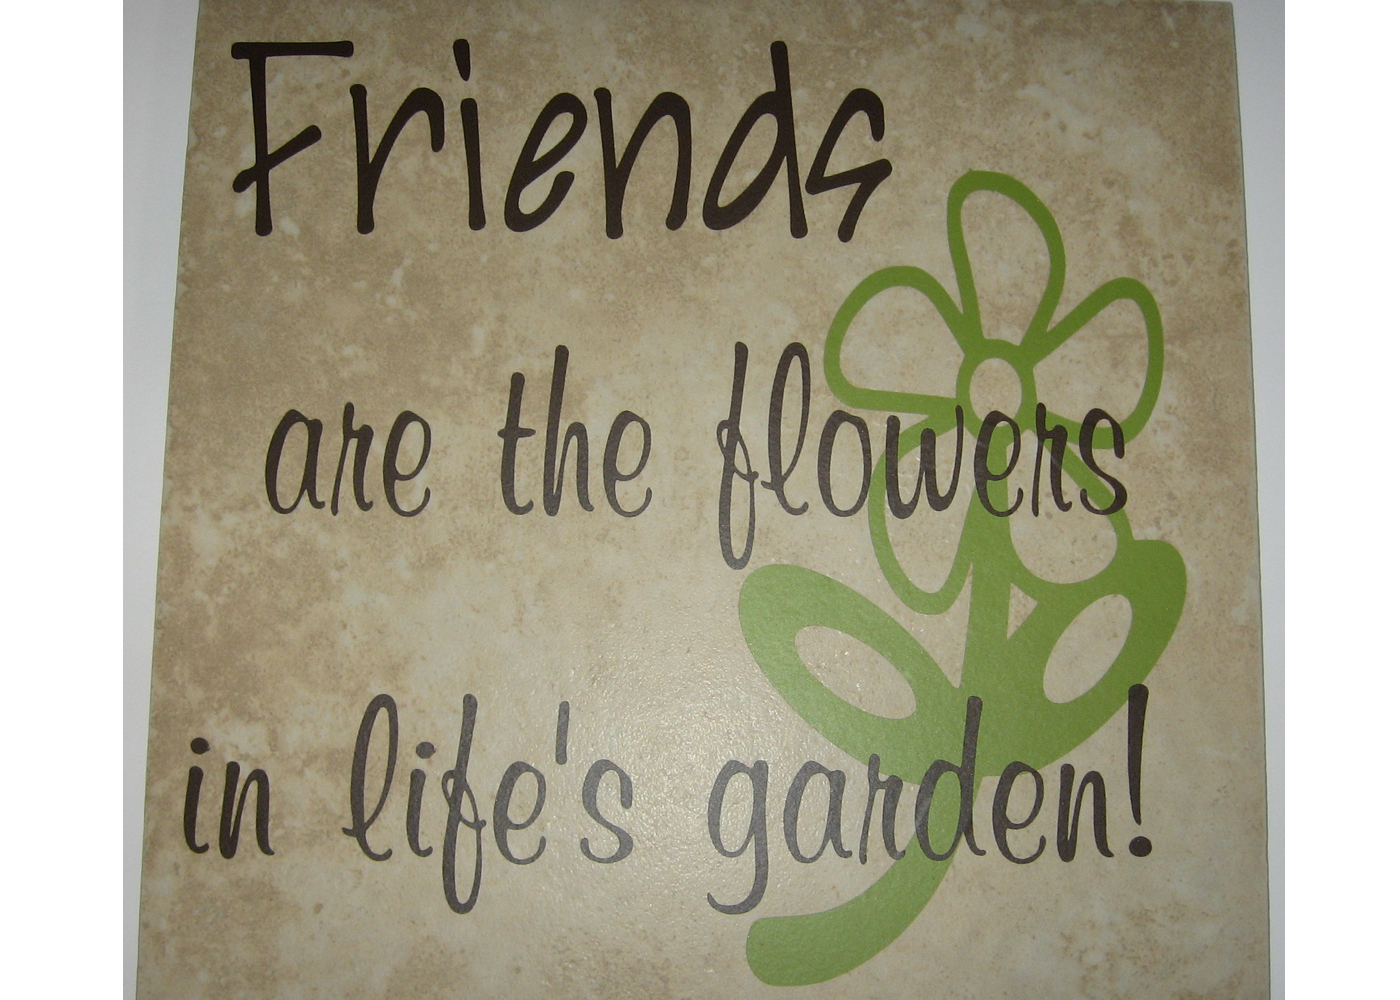 friends-life-s-garden-wall-decal-quote.jpg